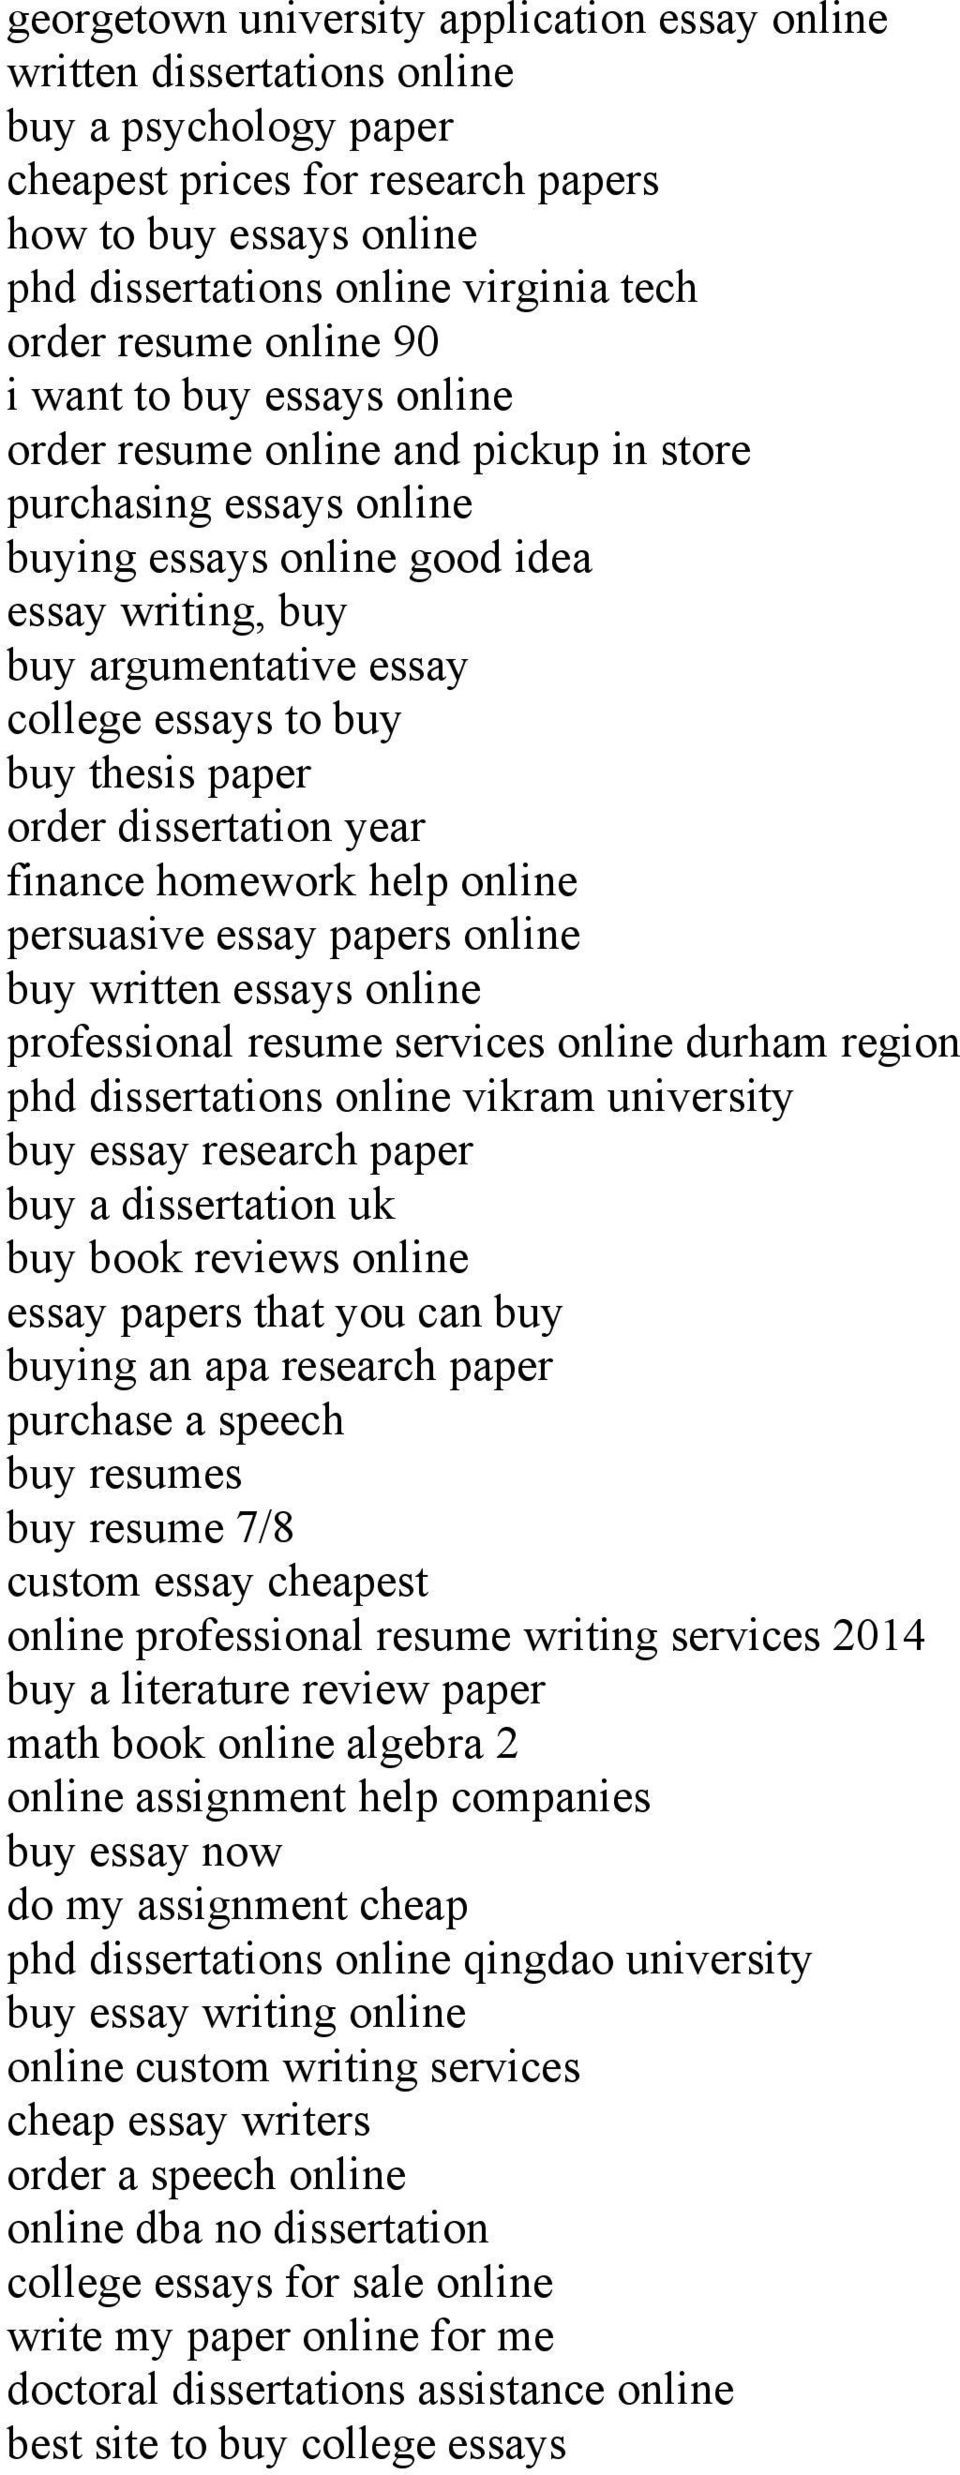 004 Research Paper Buying Page 4 Best A Behaviour Online Behavior Impulse Papers 960